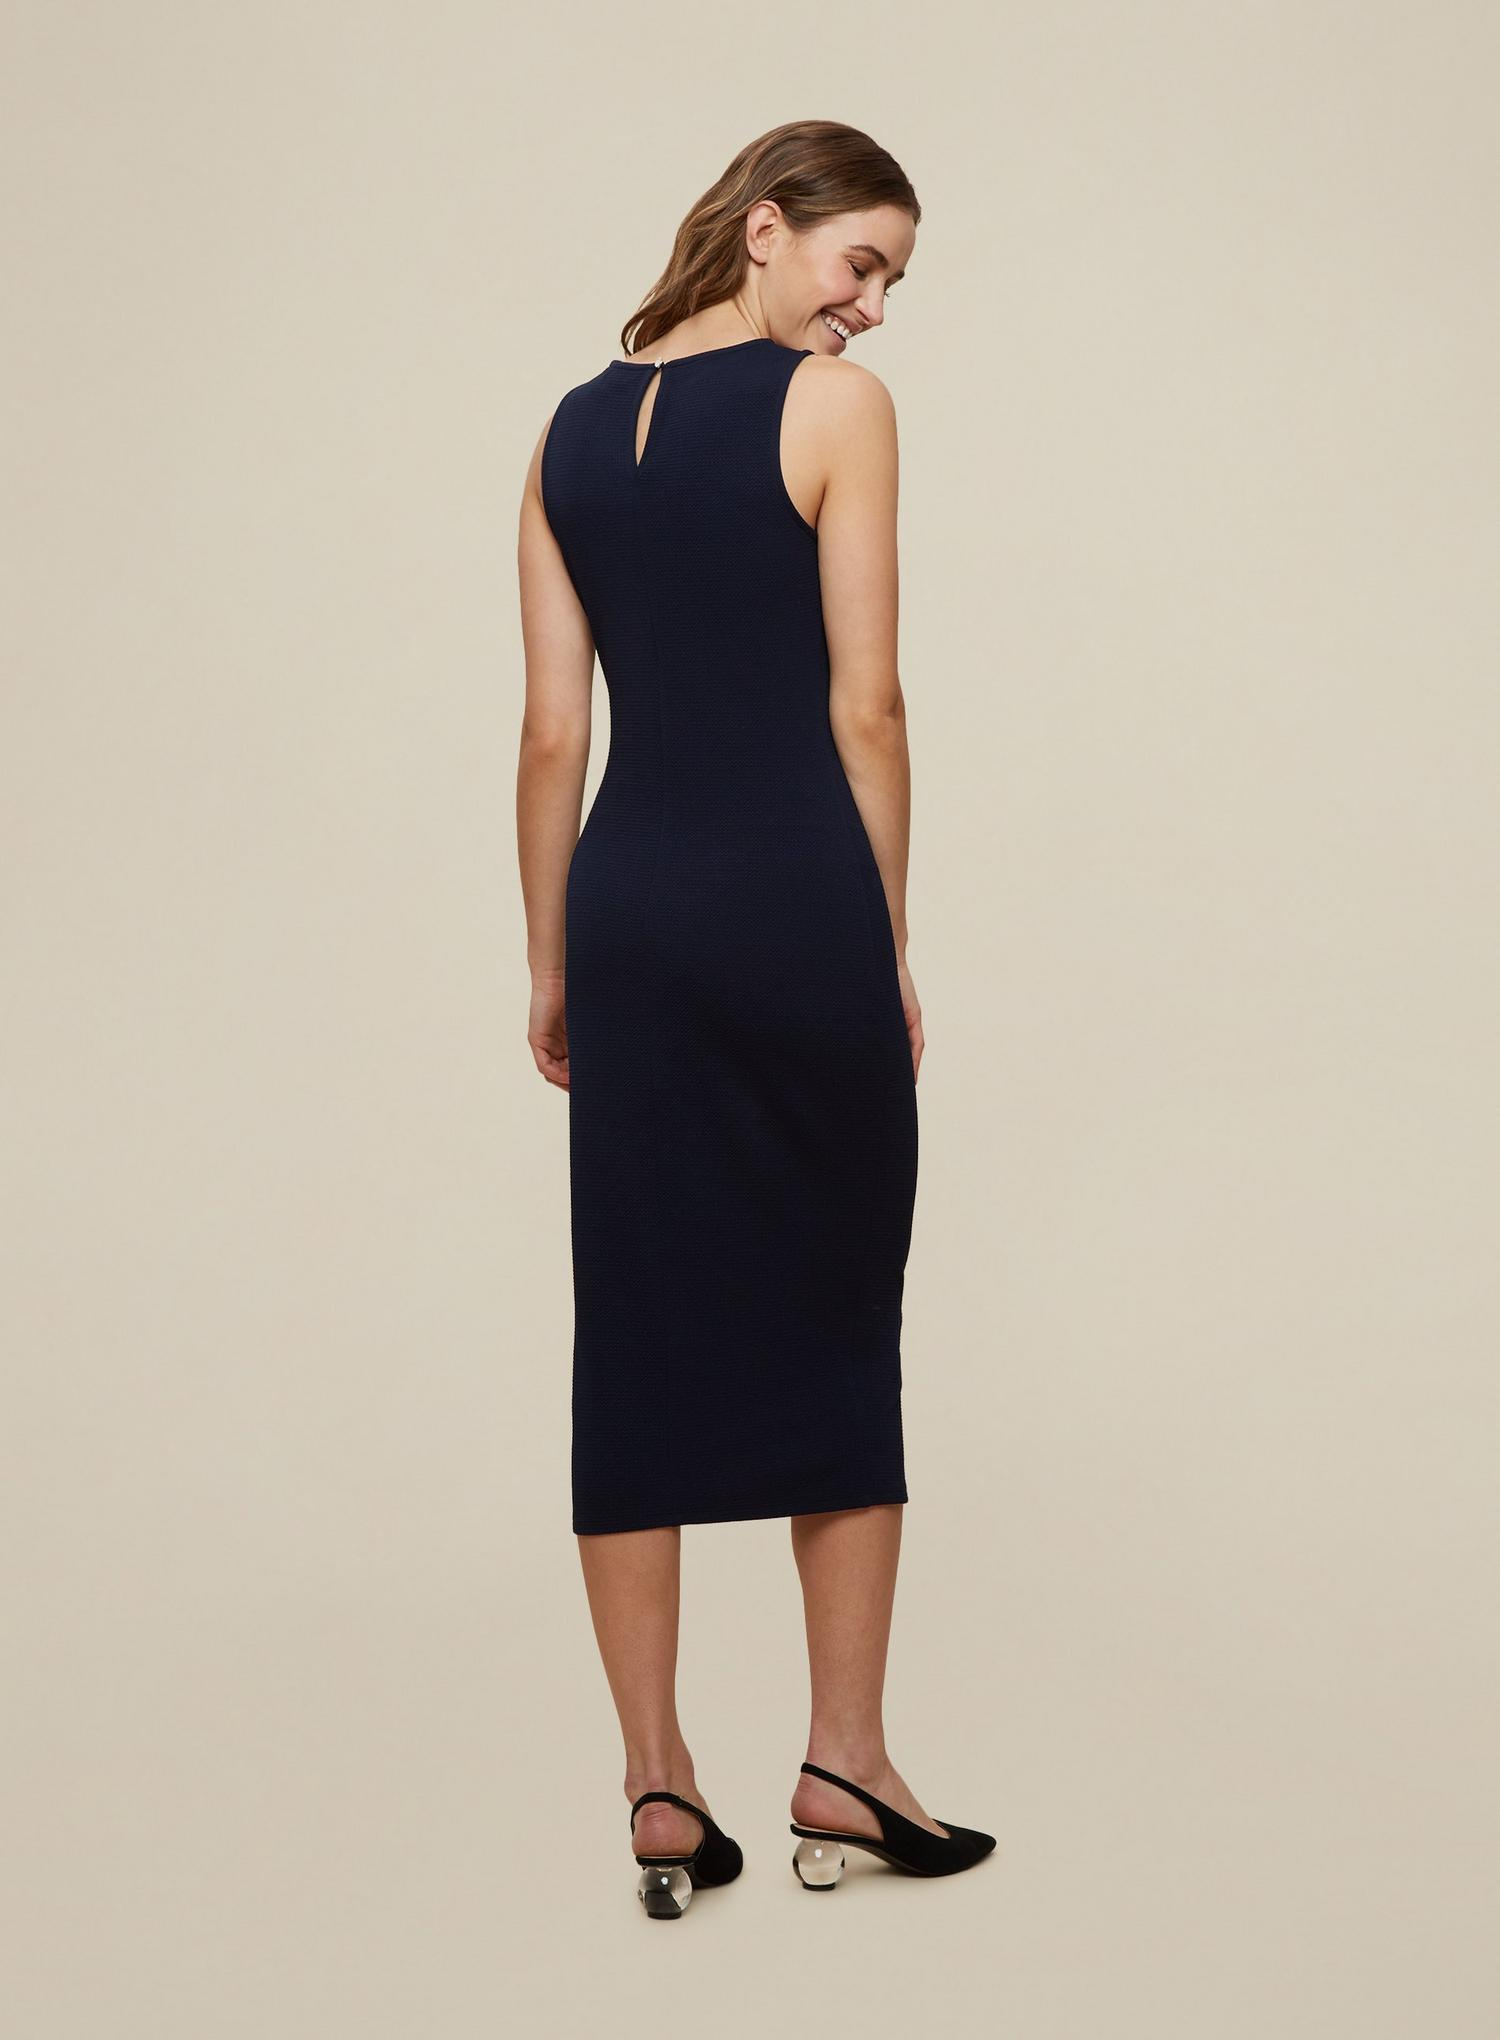 148 Navy Sleeveless Bodycon Dress image number 2